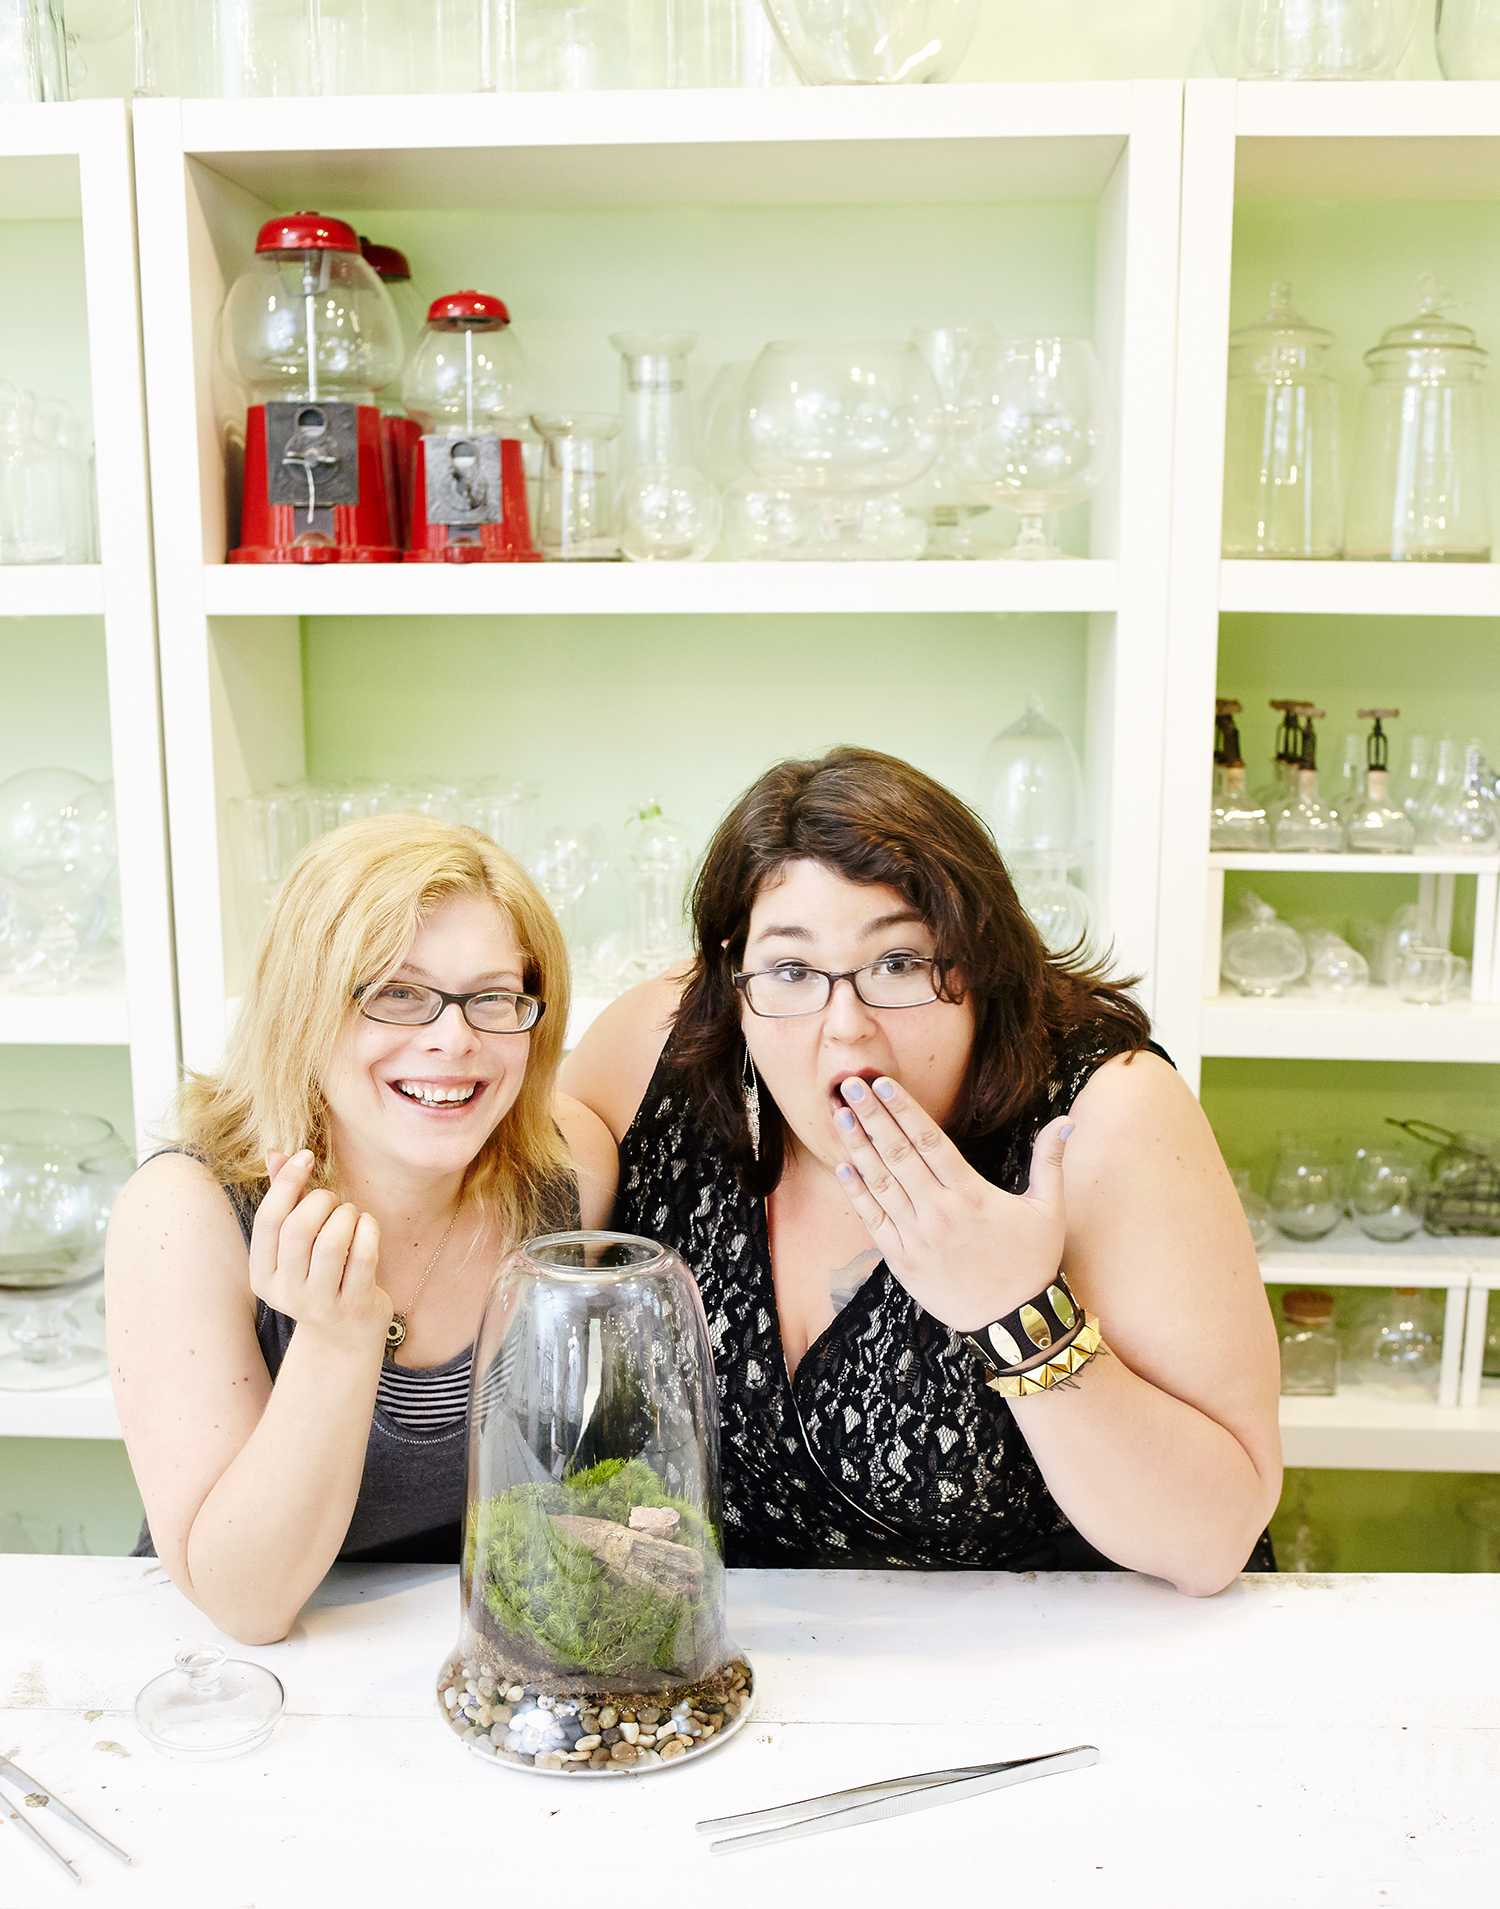 Michelle Inciarrano and Katy Maslow, owners, Twig Terrariums.